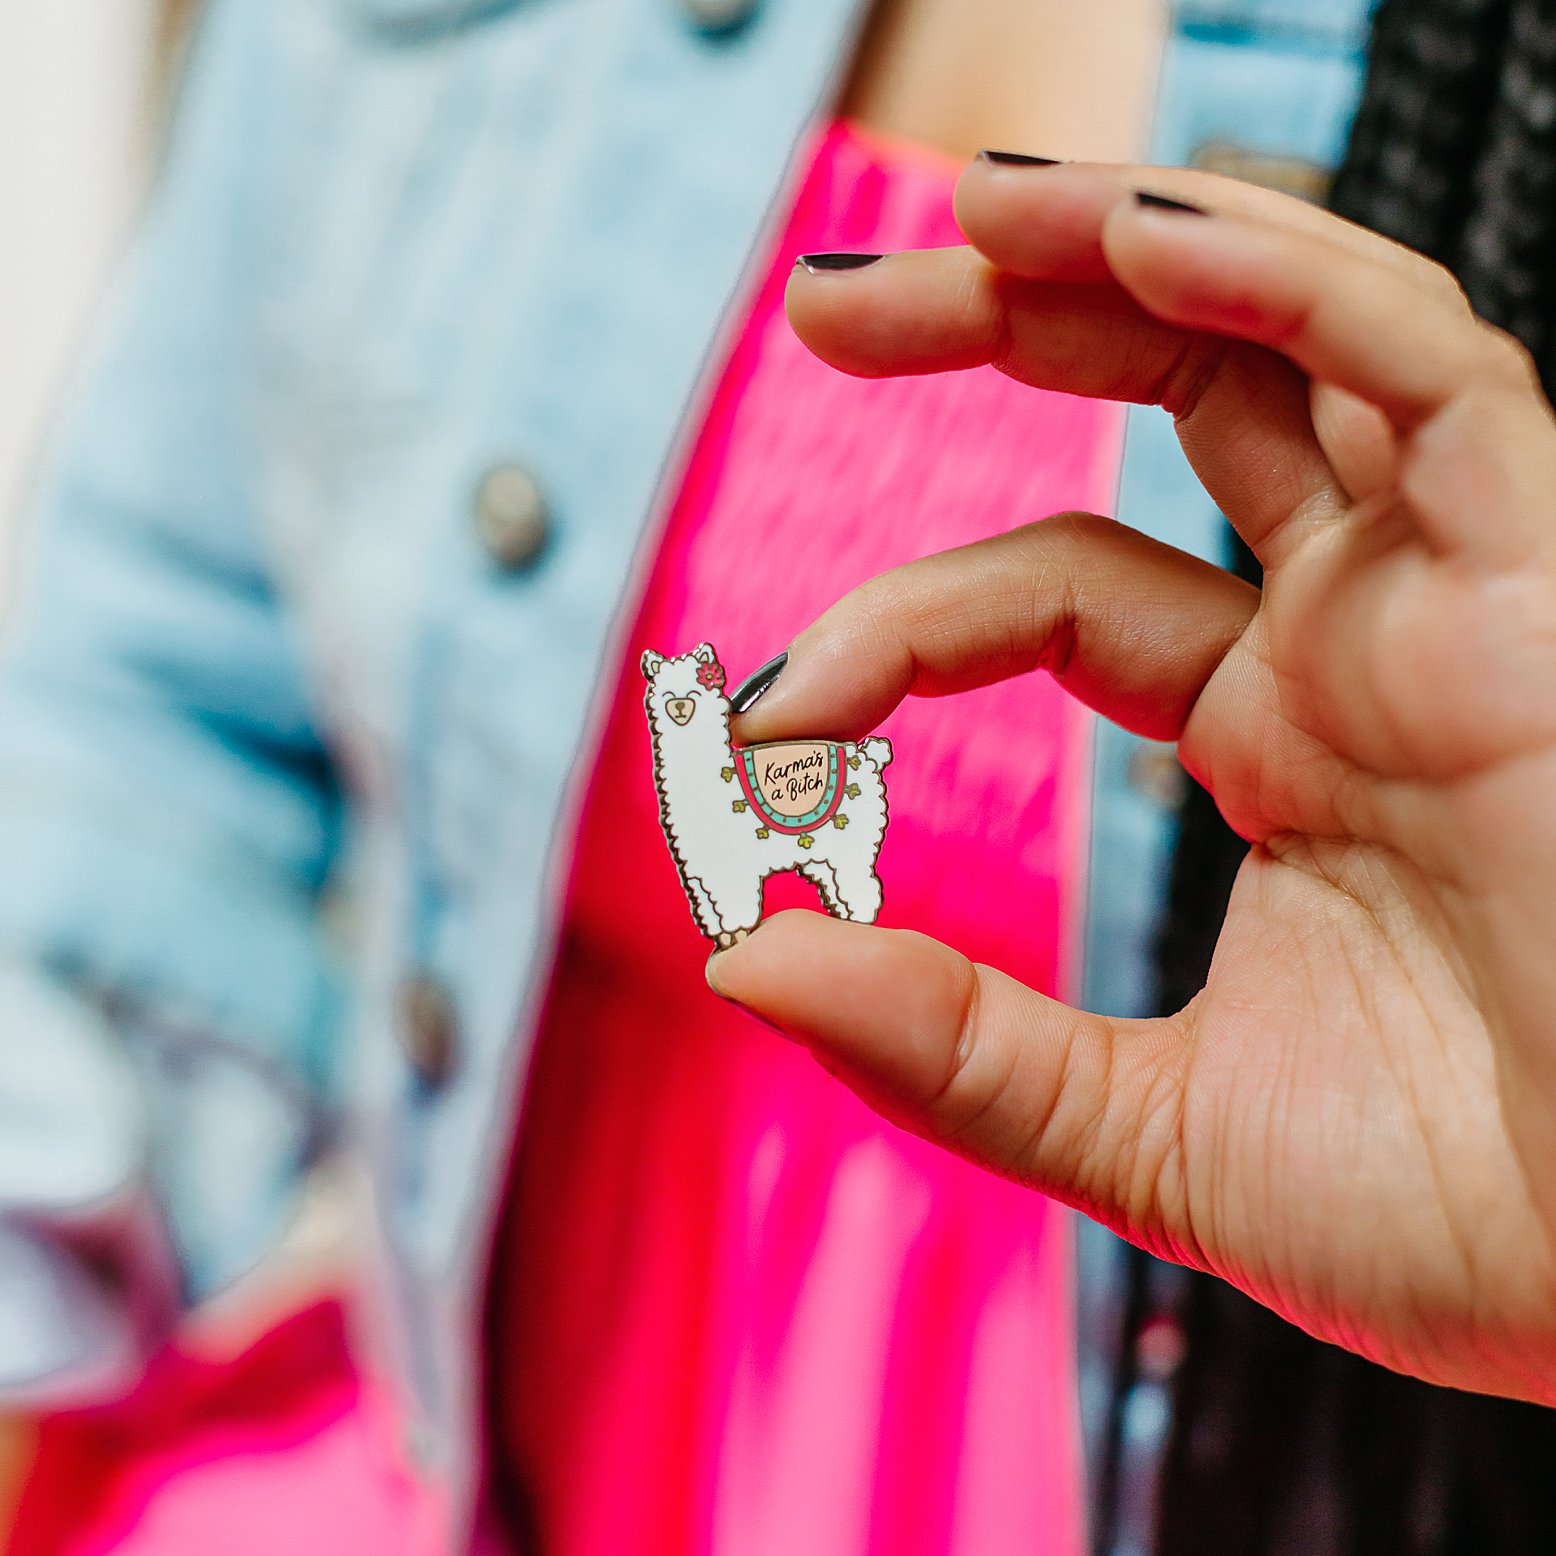 Product and lifestyle photography & content creation for Punky Pins. Product photography & styling by Marianne Taylor.